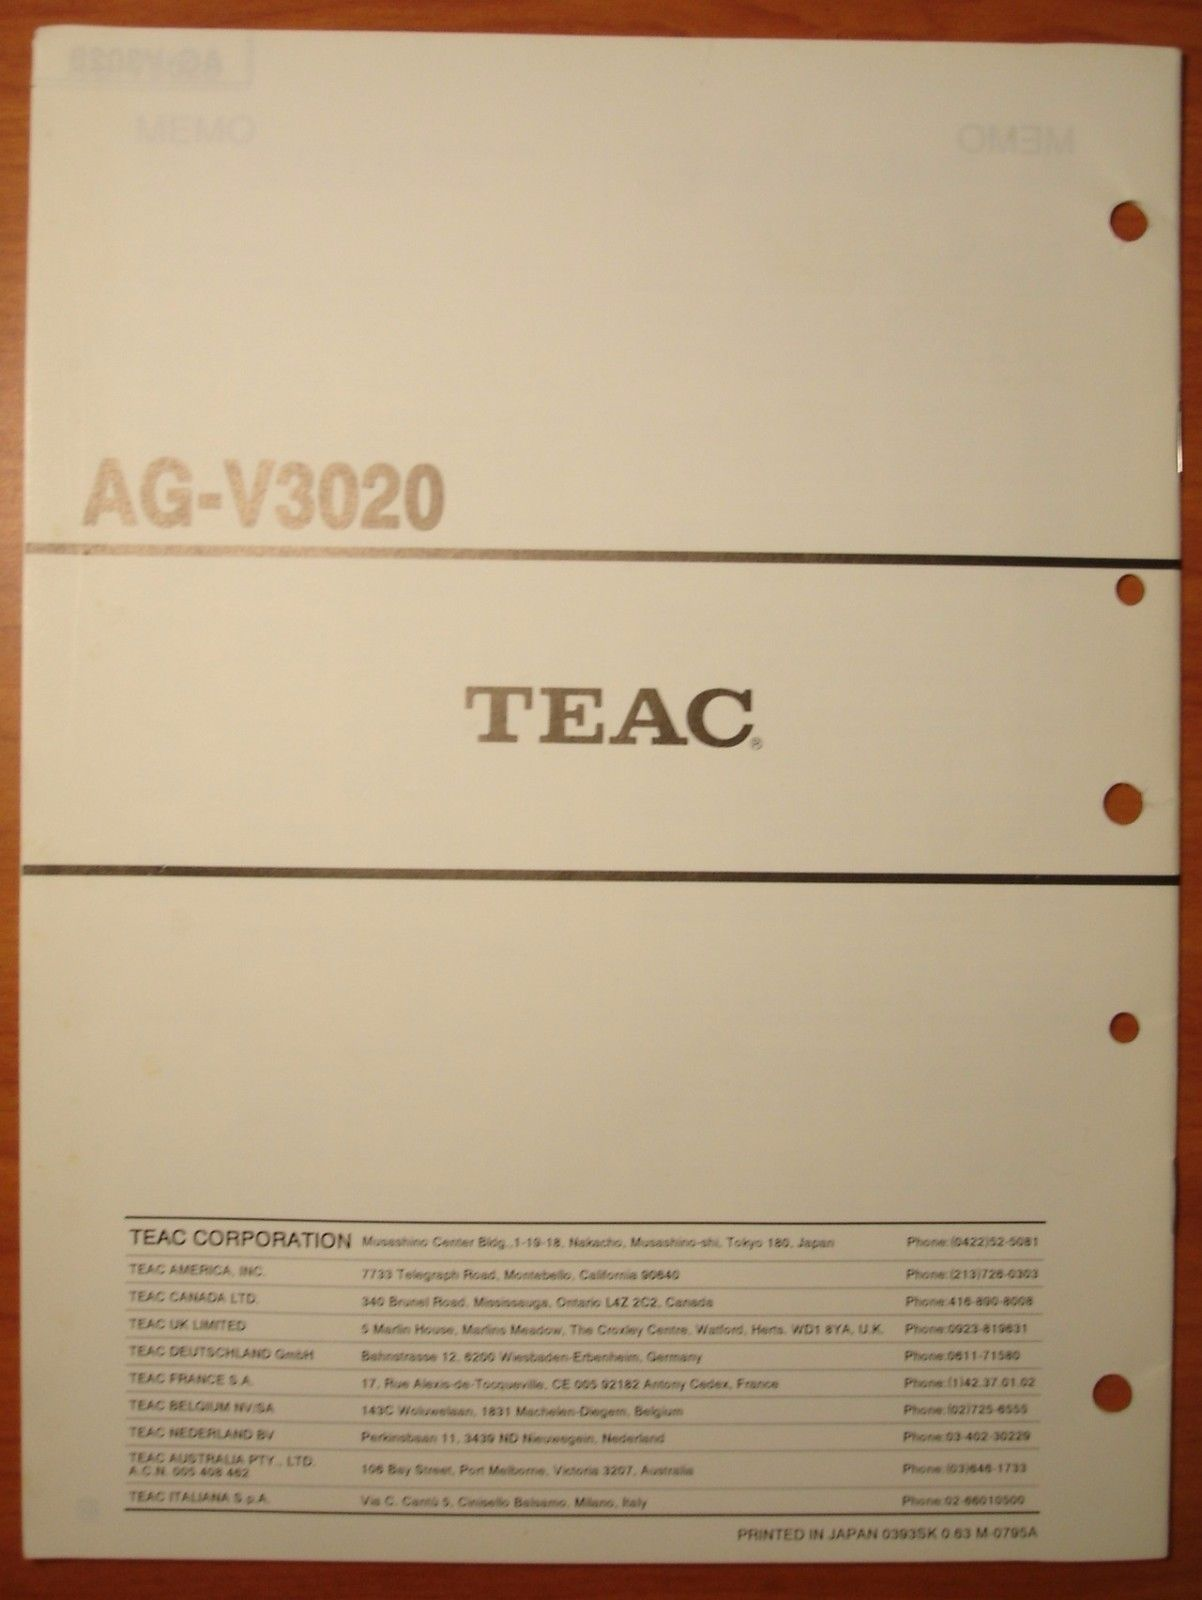 Teac Service Manual V-770/V-2020S/CD-P3100&4100/AG-V3020/supp